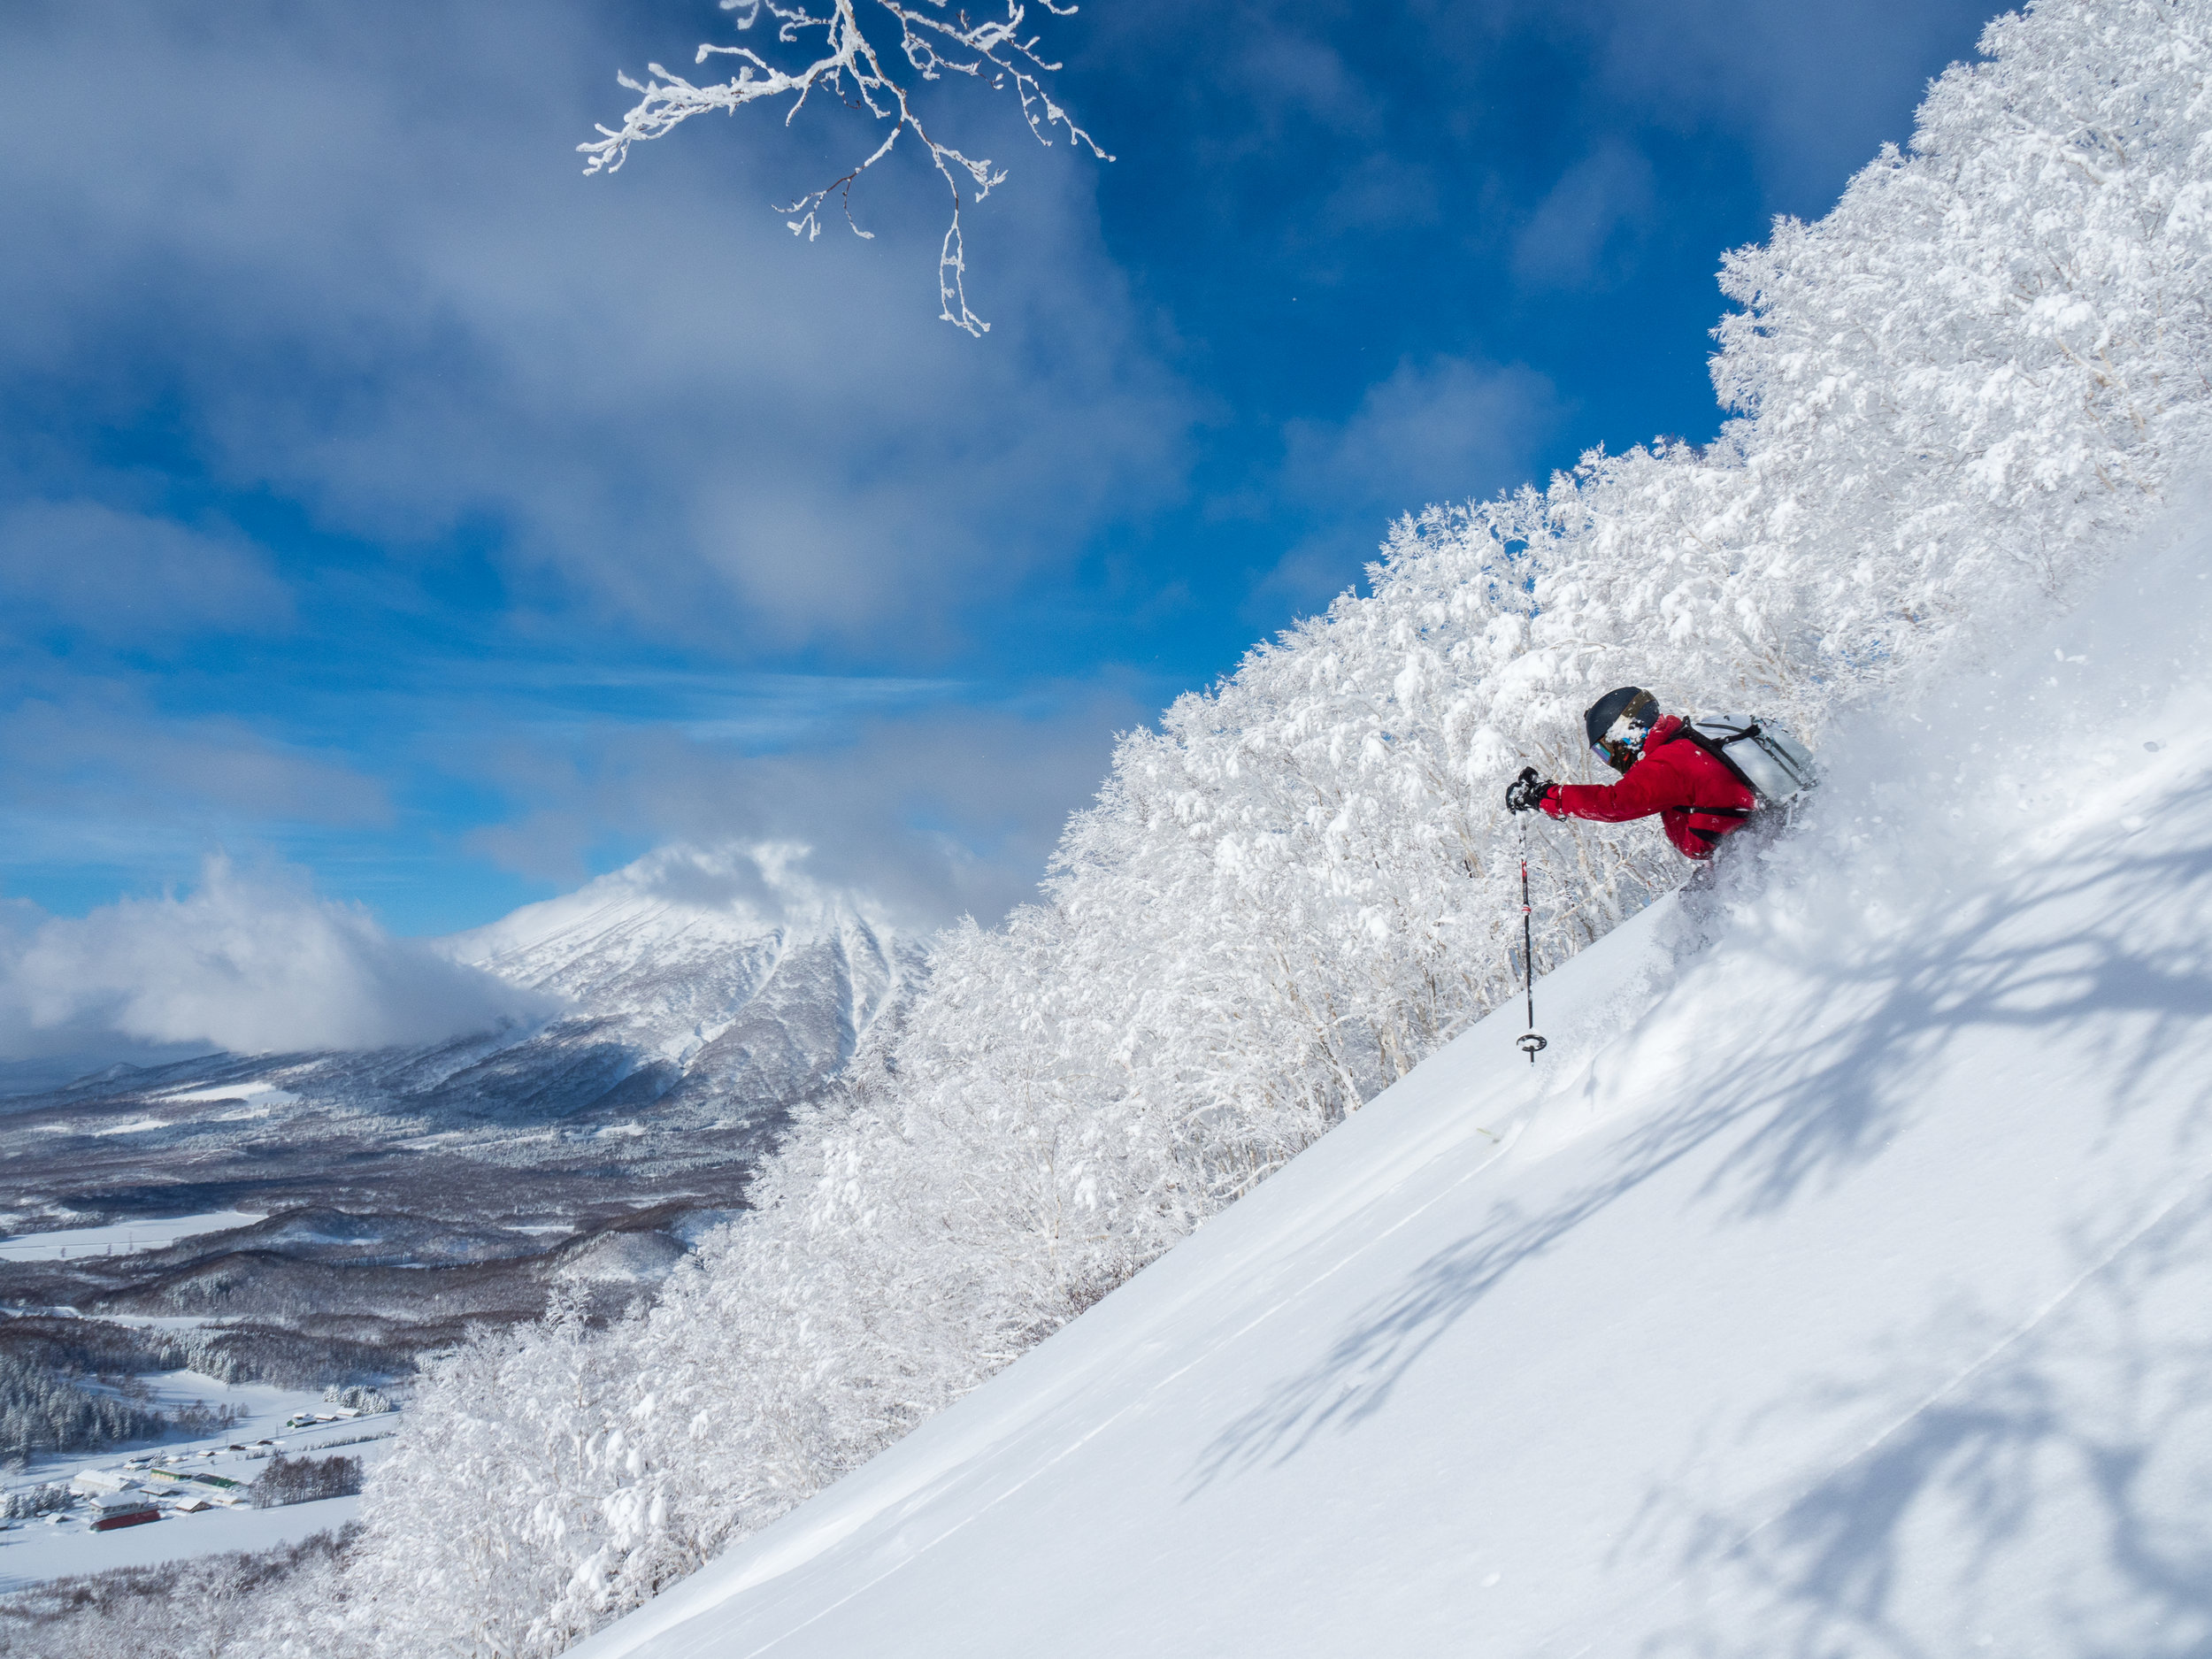 Mabey Ski_Japan_Niseko_Backcountry Skiing_Mt Yotei_Niseko Photography_1.jpg